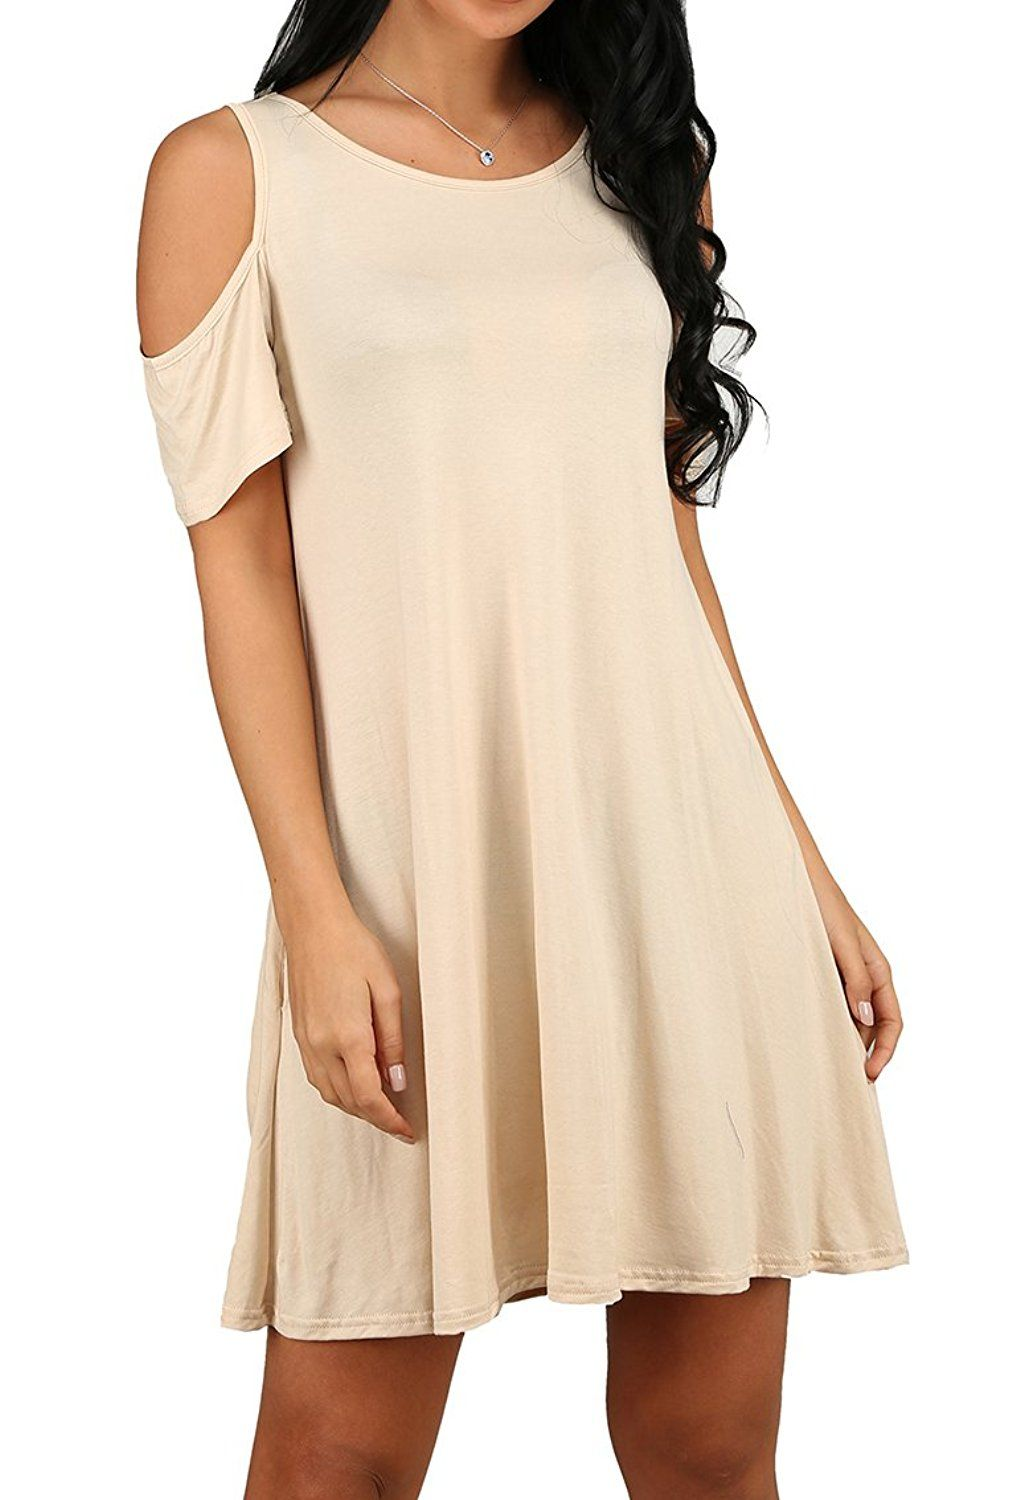 5ce1d509c753 OFEEFAN Women's Cold Shoulder Tunic Top T-shirt Swing Dress With Pockets